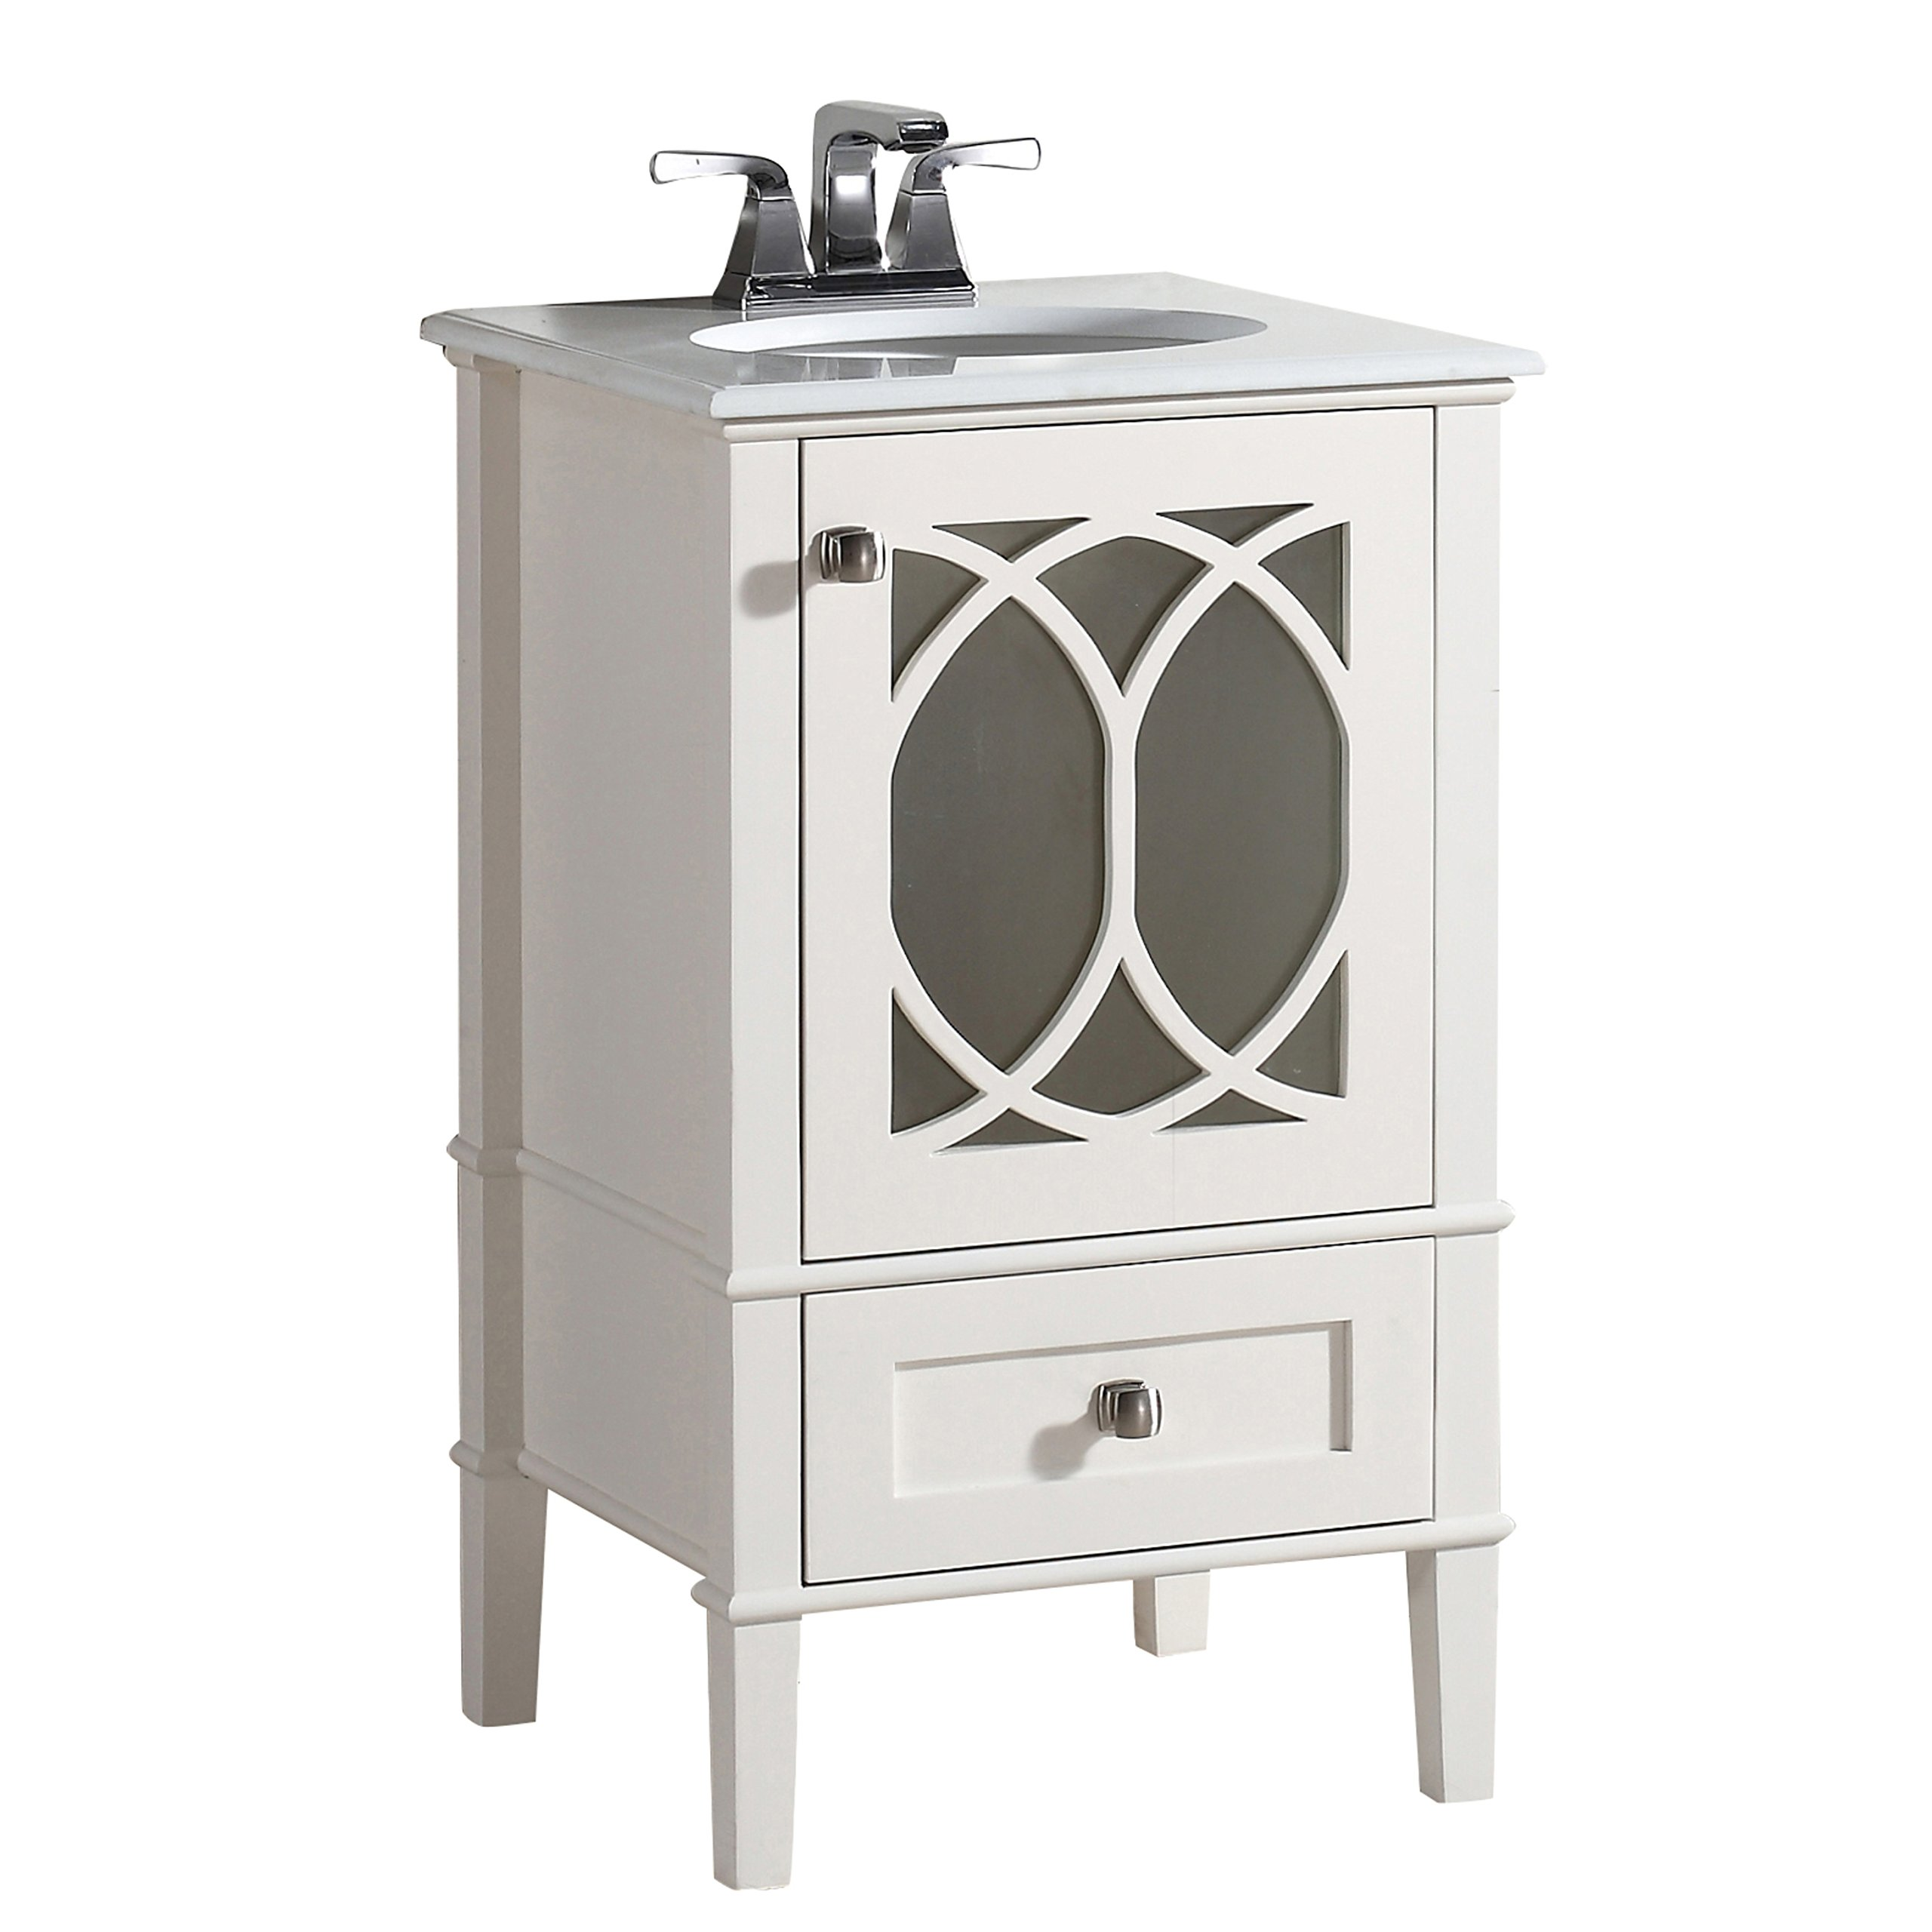 Simpli Home Paige 20'' Bath Vanity with Quartz Marble Top, Soft White by Simpli Home